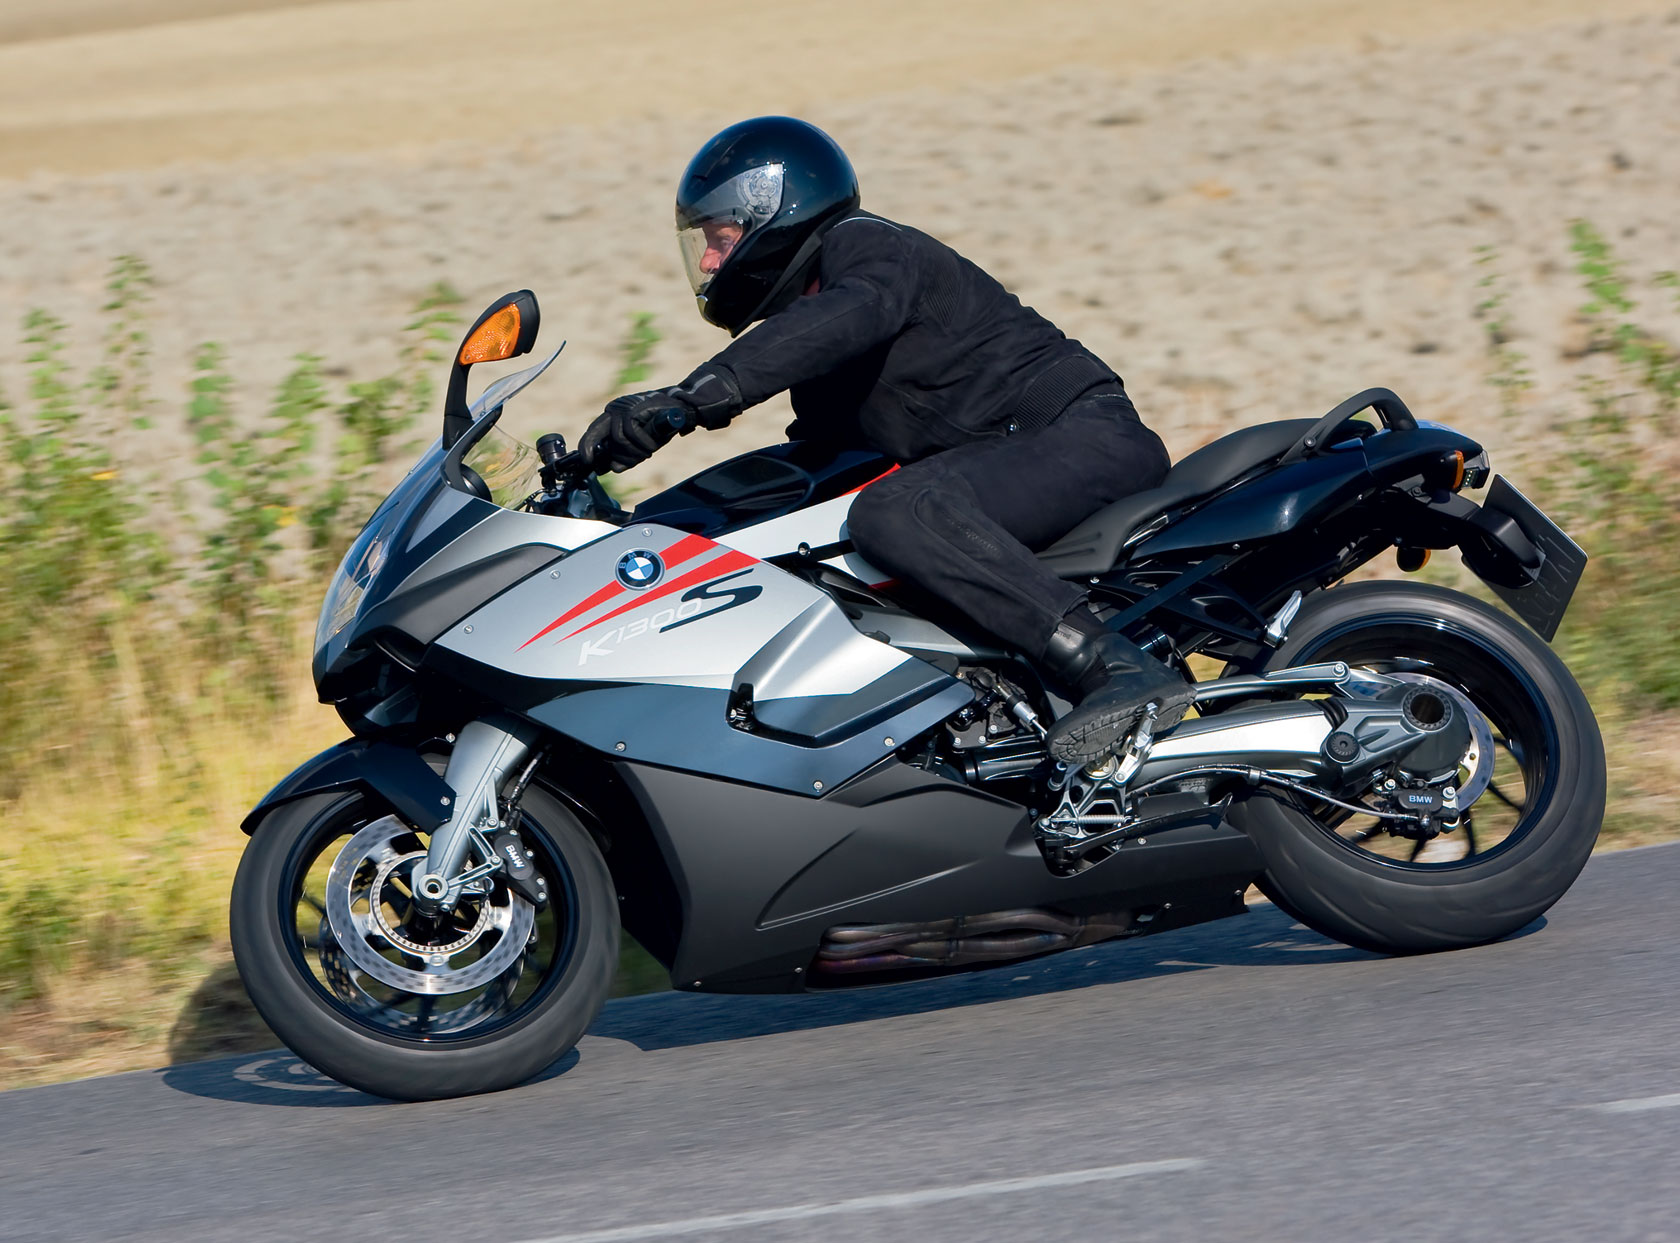 2009 Bmw k1300s review forum